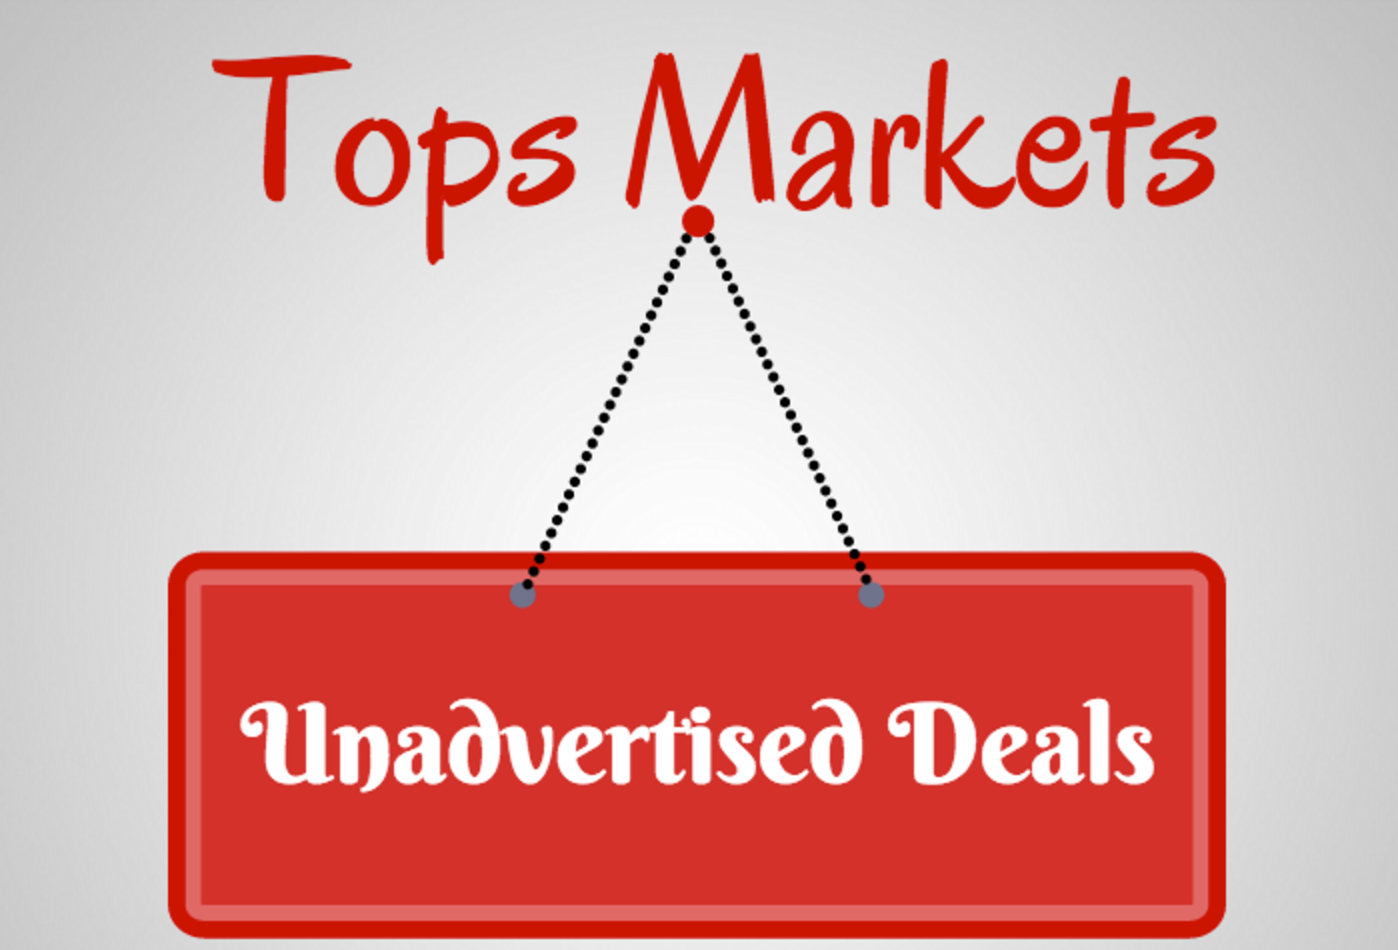 More Tops Unadvertised Deals plus the ad scan for Sunday is live! Free Taco Seasoning, $4.99 Tim Hortons Coffee & more